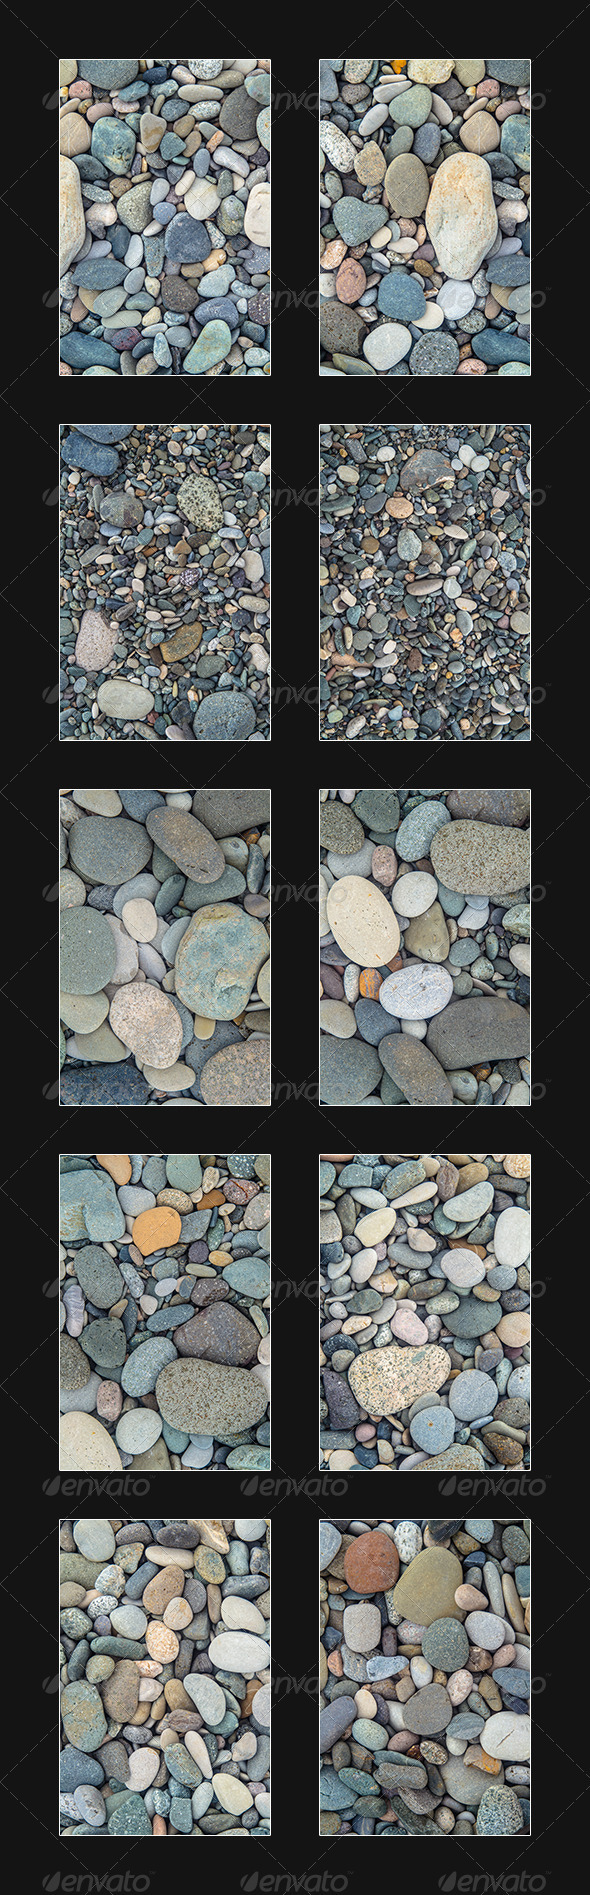 Pack Of Small Stones, 10 Textures, Pack 2 - Stone Textures